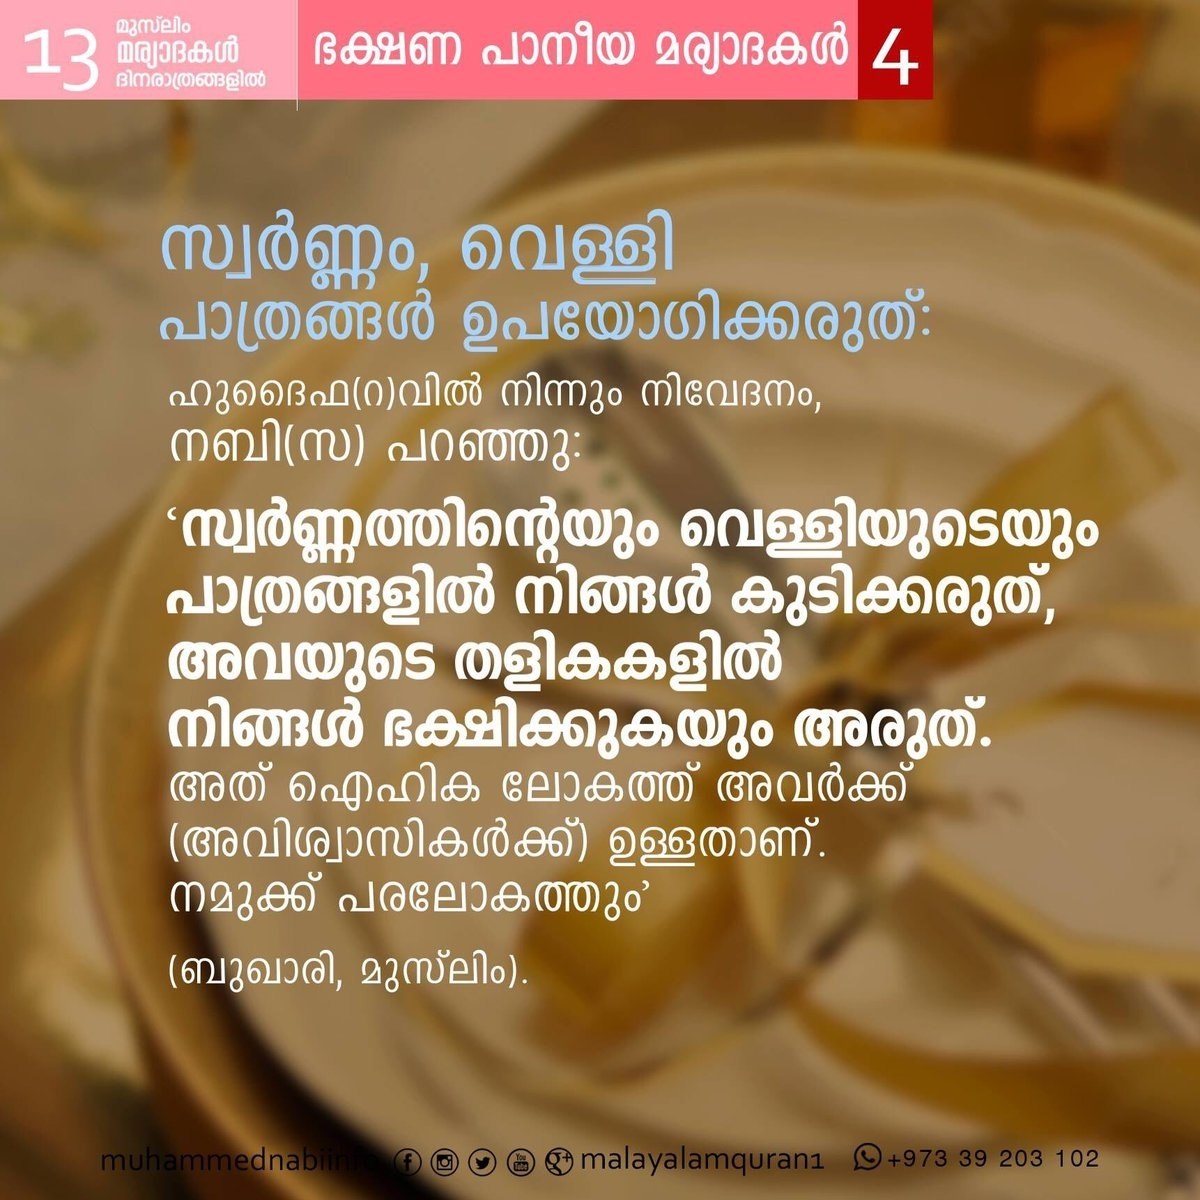 Quran Quotes Life In Malayalam Quran Quotes Love In Malayalam Gallery For Islamic Picture